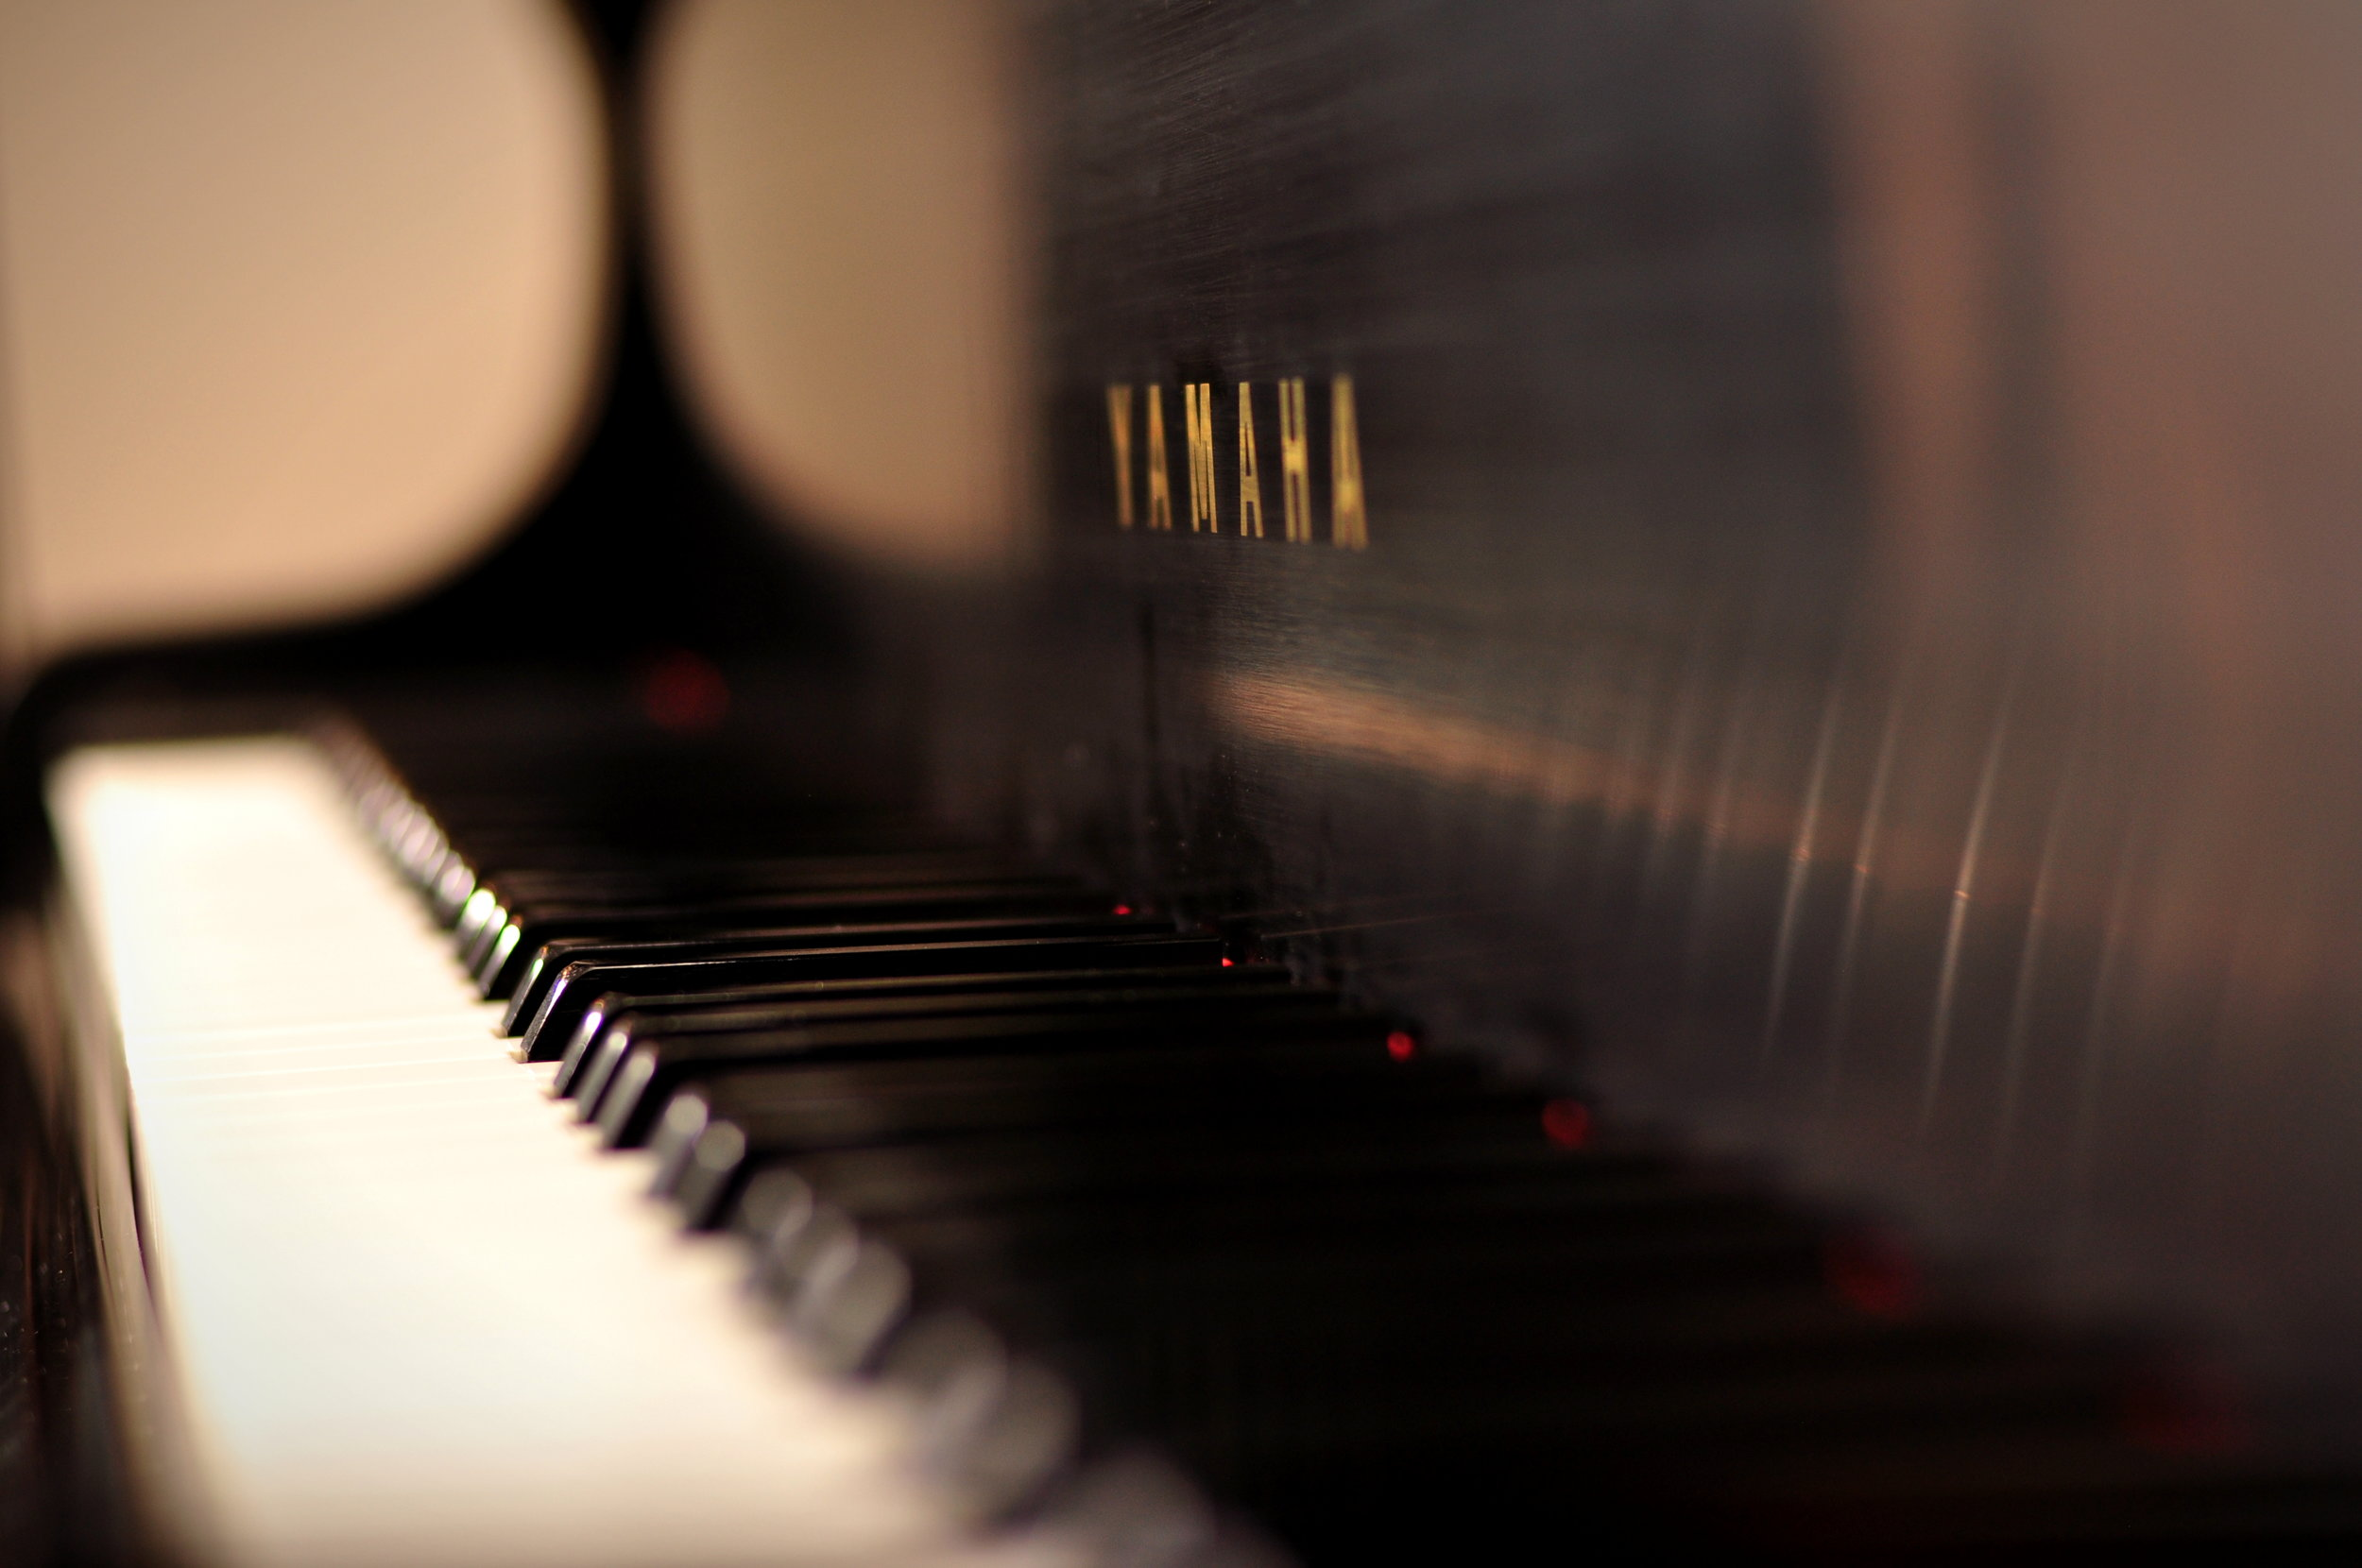 Yamaha C7 Conservatory - The hallmark of Studio D is the Yamaha C7 Conservatory Grand Piano - the standard for pro recording studios. She was a dream come true.Photo by Josh Dornbackhttps://soundcloud.com/douglas-furia-737099434/derek-sumpmann-and-seth-quay-recorded-in-studio-d-may-2019